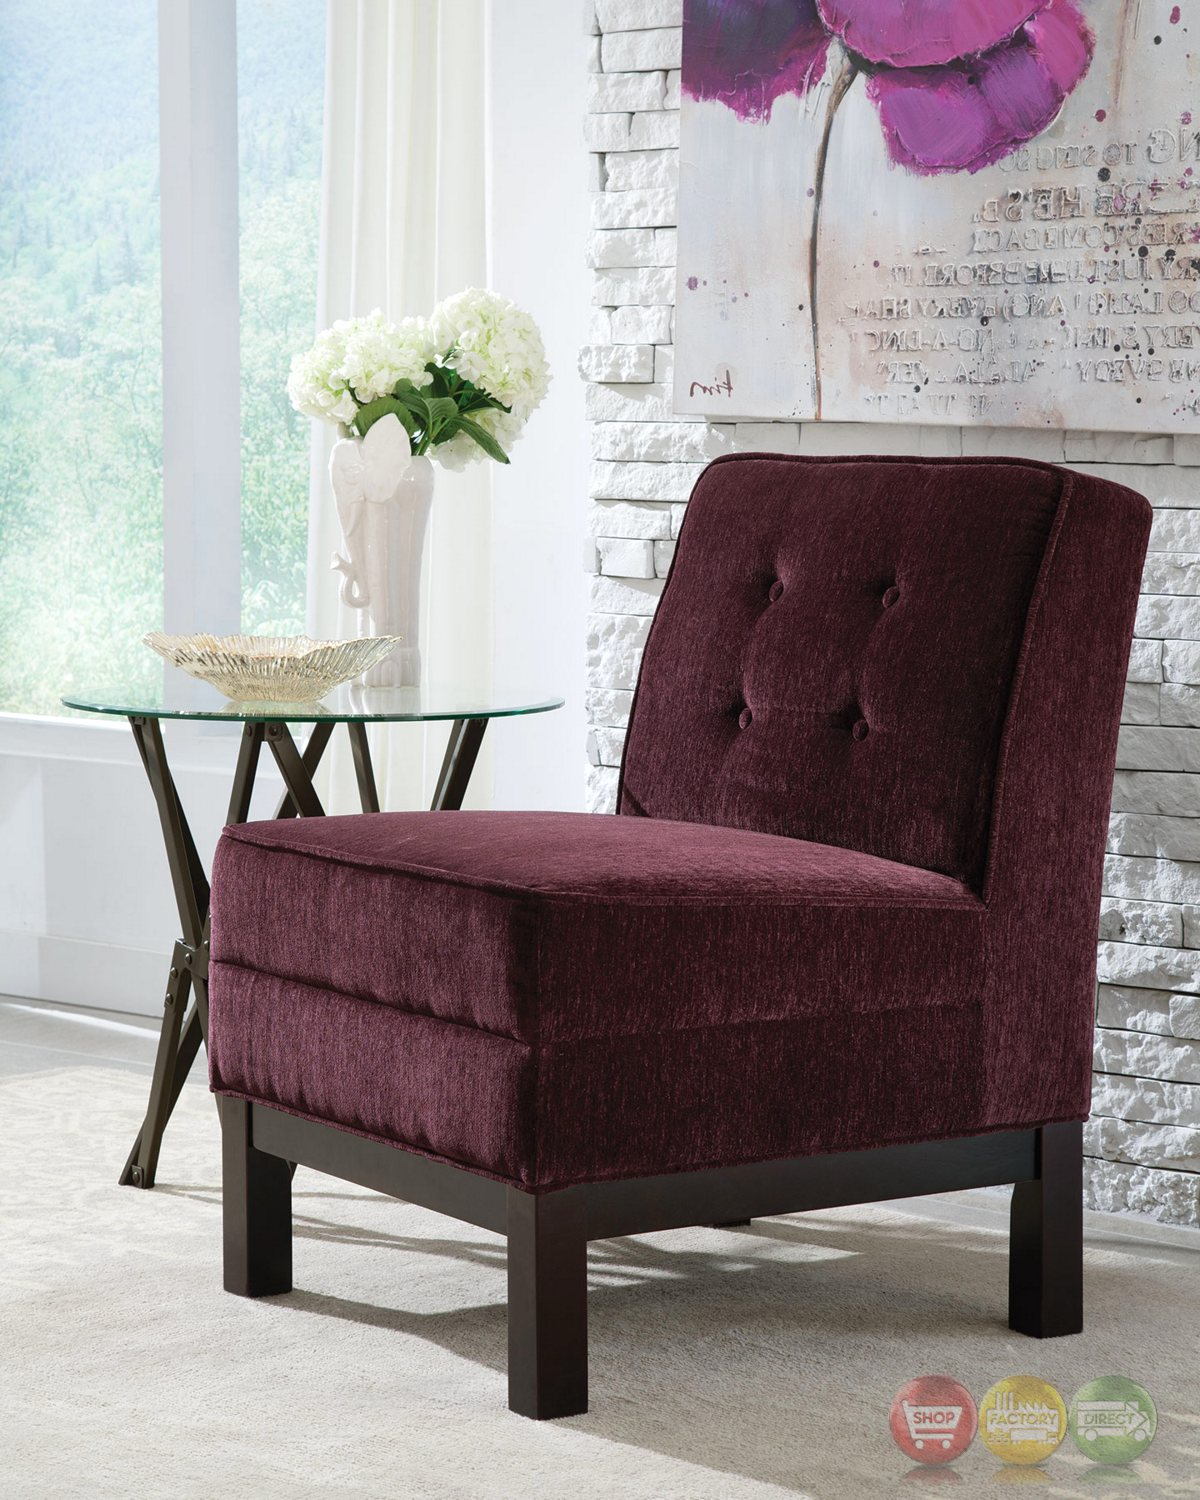 Eggplant Purple Button Tufted Armless Accent Chair With